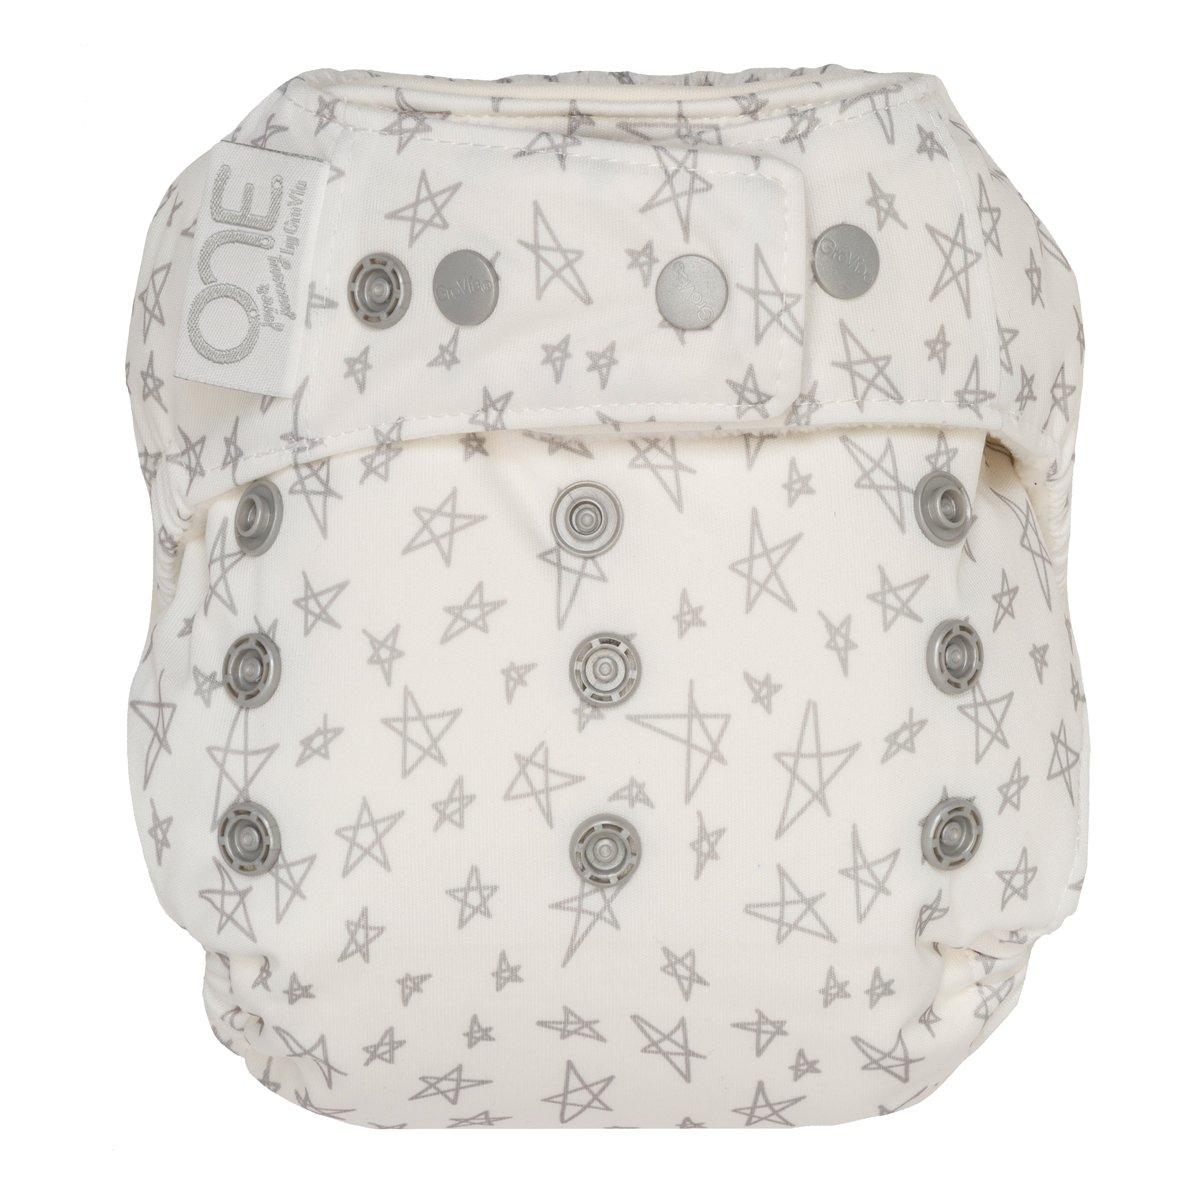 GroVia One Size Cloth Diaper Shell Set -  Slate Stars